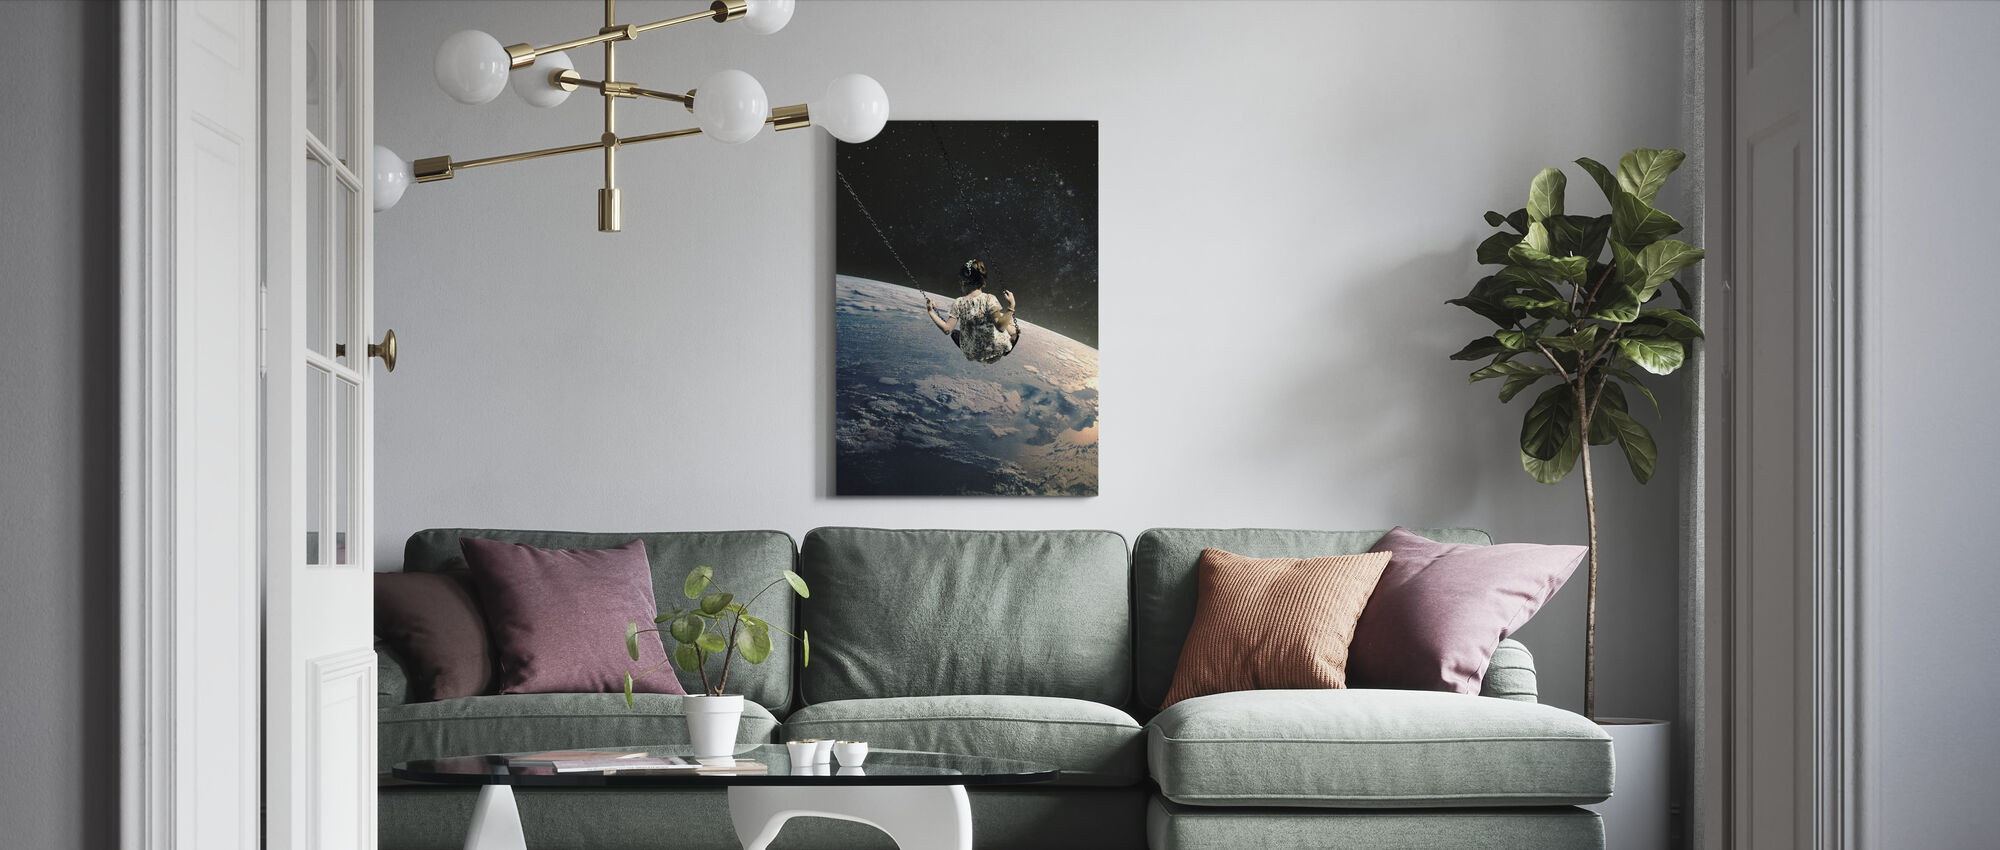 Swing - Canvas print - Living Room